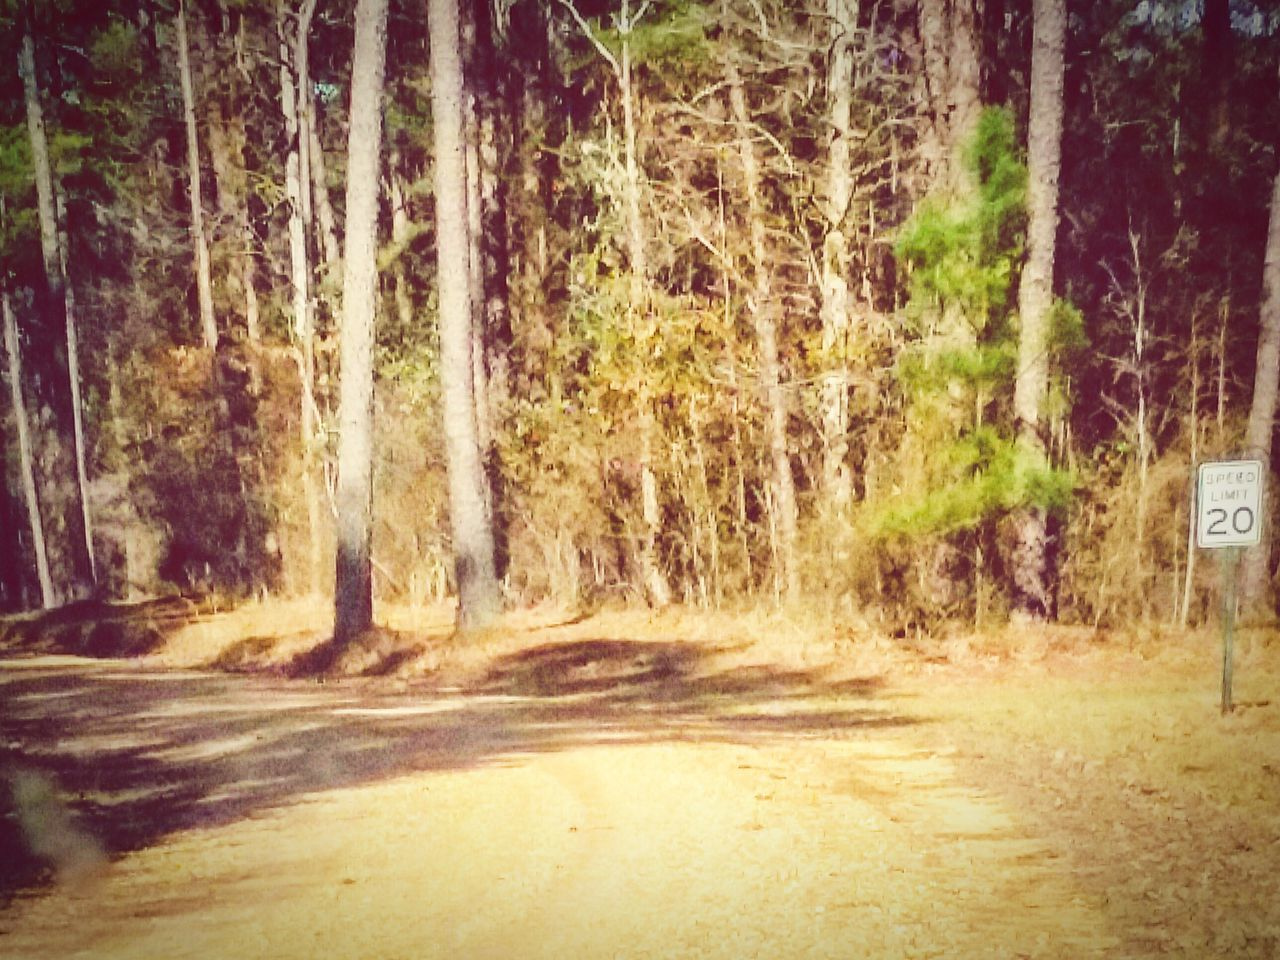 Outdoors Beauty In Nature Dirt Road Speed Limit Sign Speed Limit No People Sunlight And Shadow